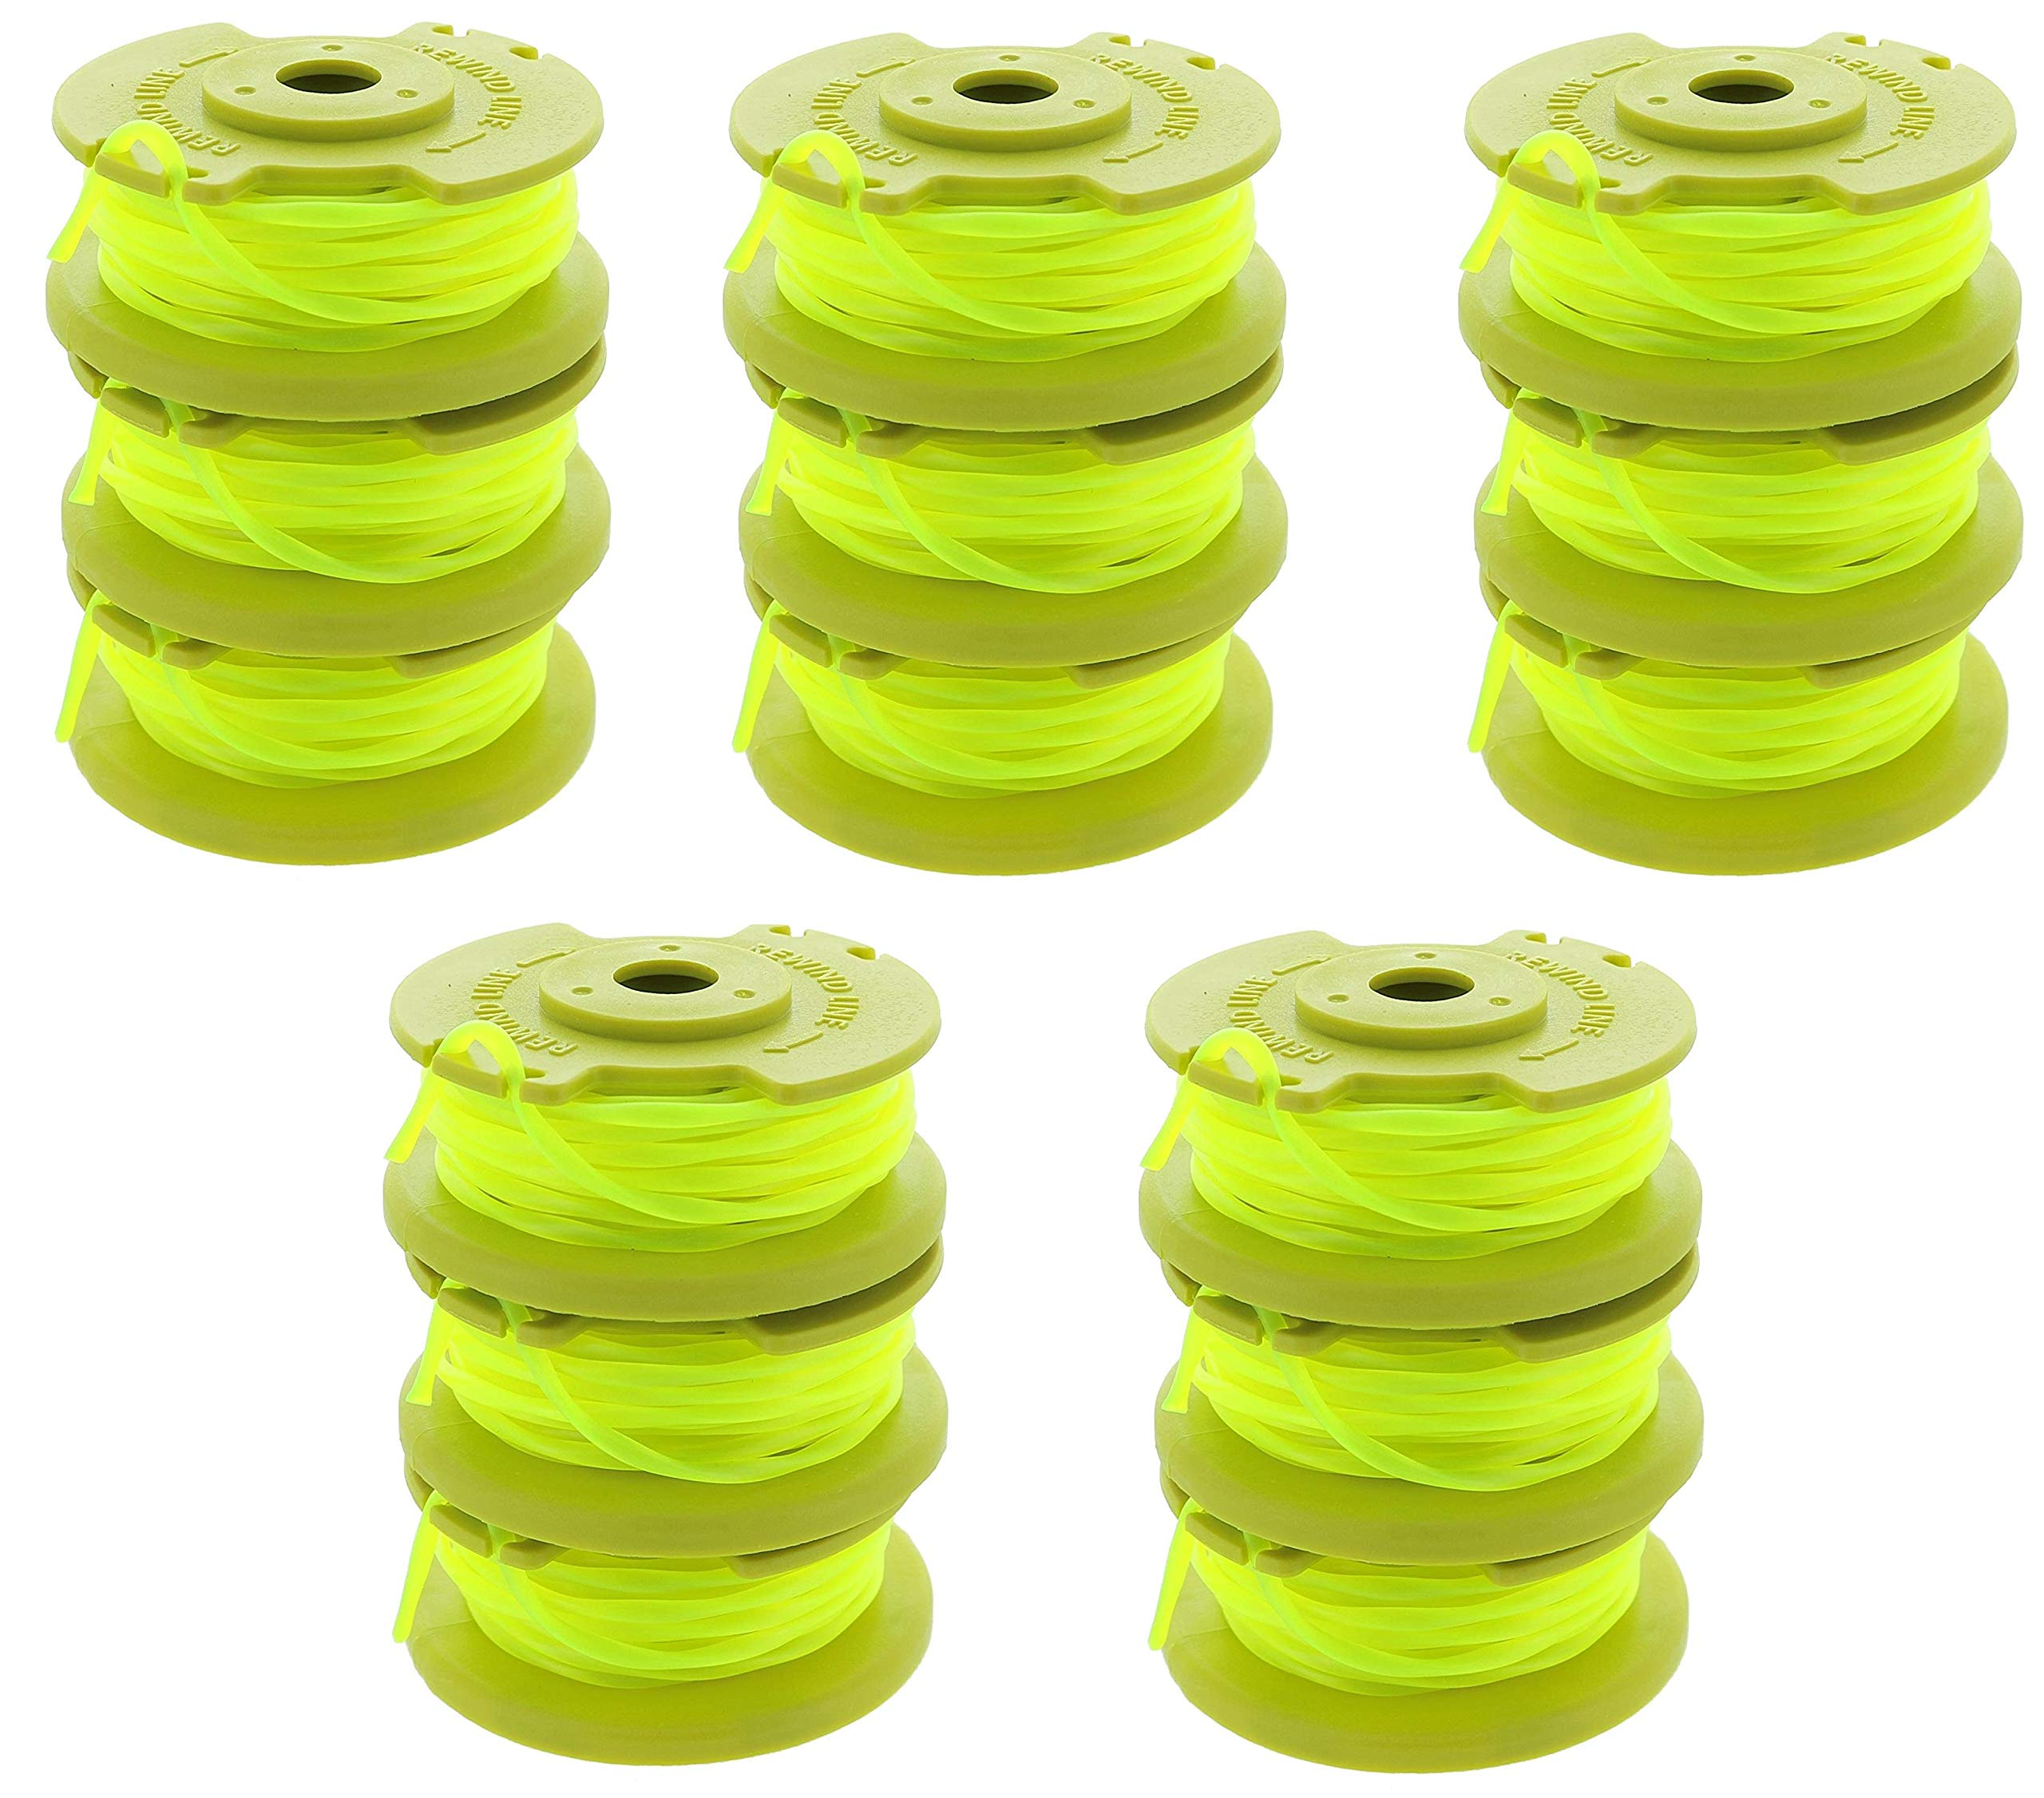 Ryobi One PLUS+ AC80RL3 OEM .080 Inch Twisted Line and Spool Replacement for Ryobi 18v, 24v, and 40v Cordless Trimmers (Pack of 15) by Ryobi